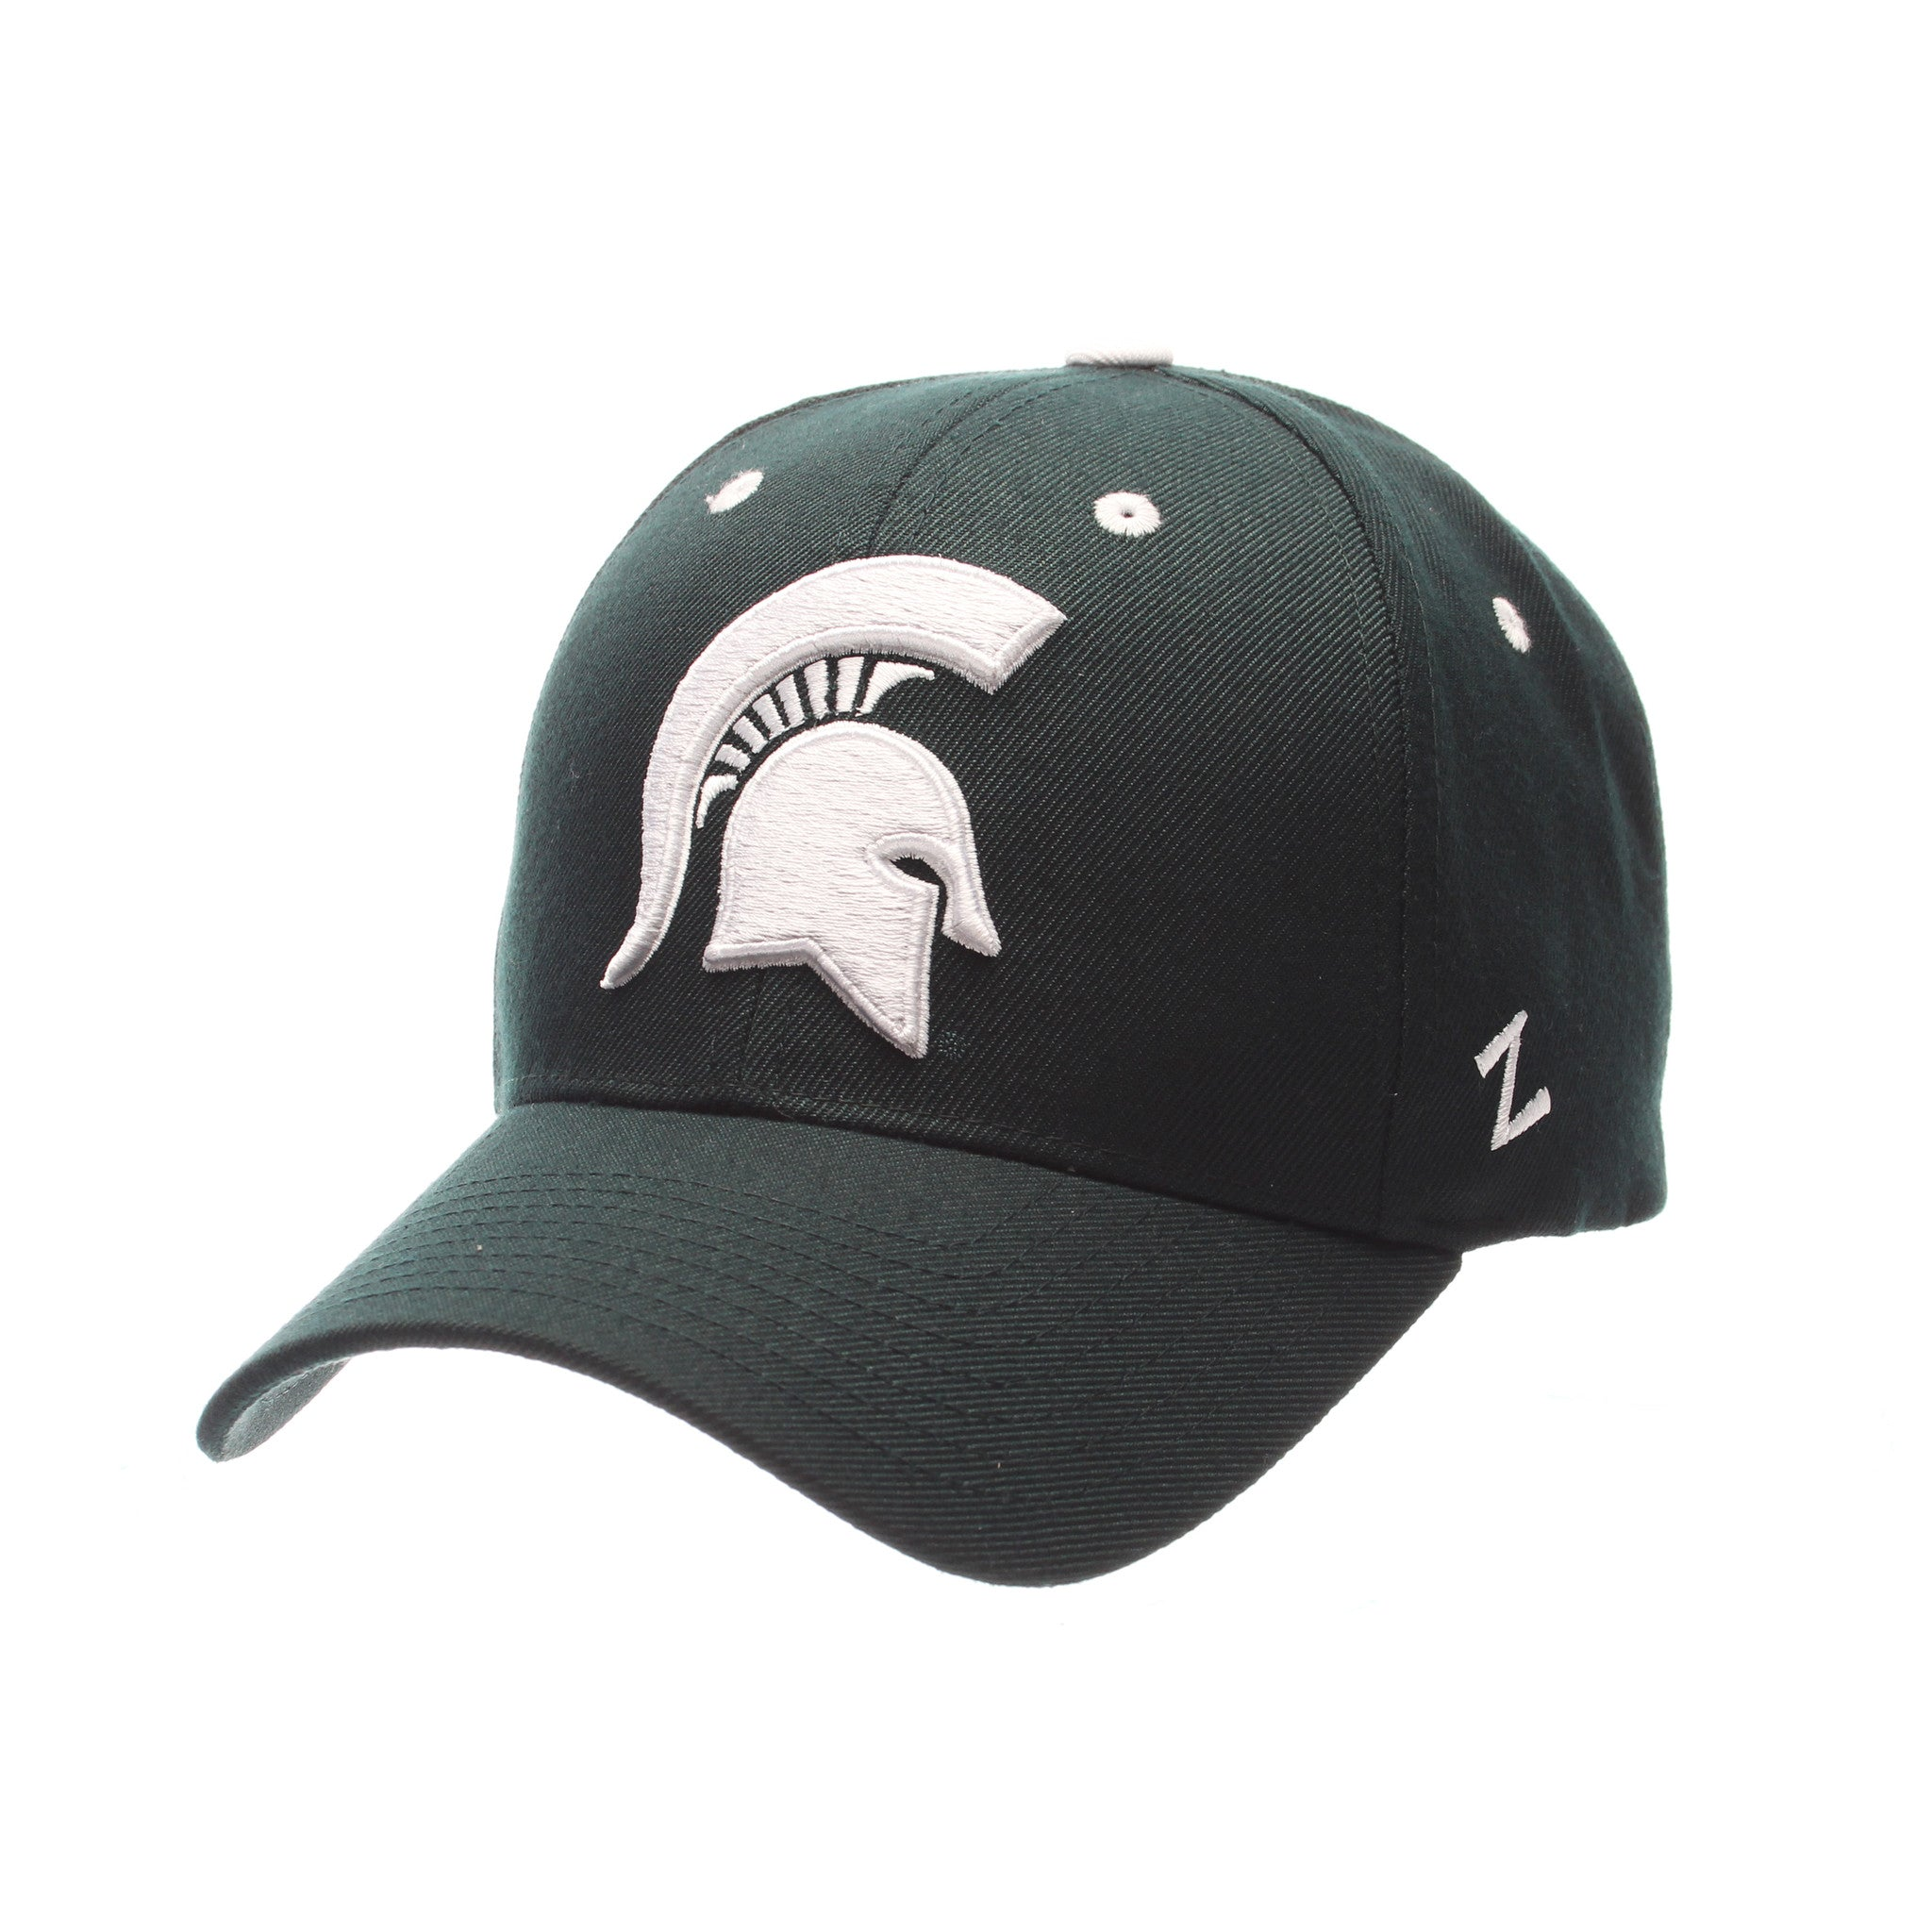 Michigan State University Competitor Standard (Low) (SPARTAN) Forest Dark Zwool Adjustable hats by Zephyr